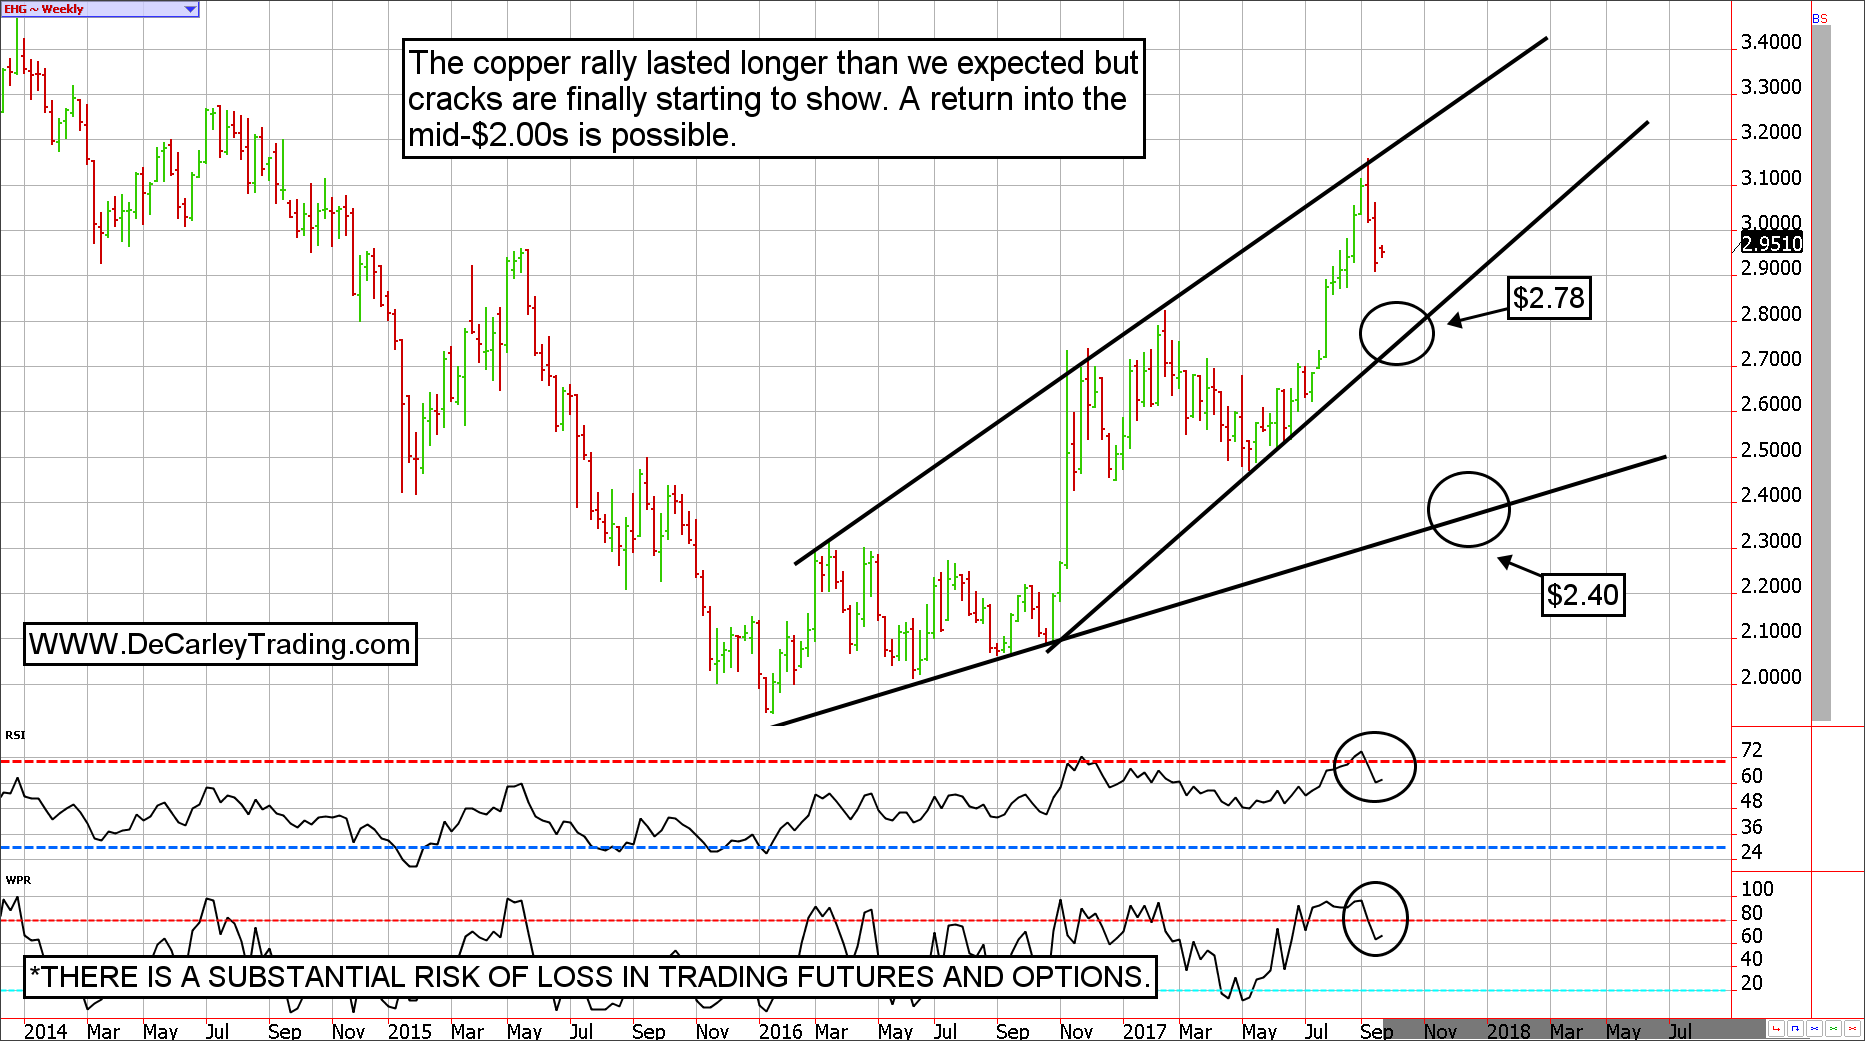 Copper Futures Weekly View